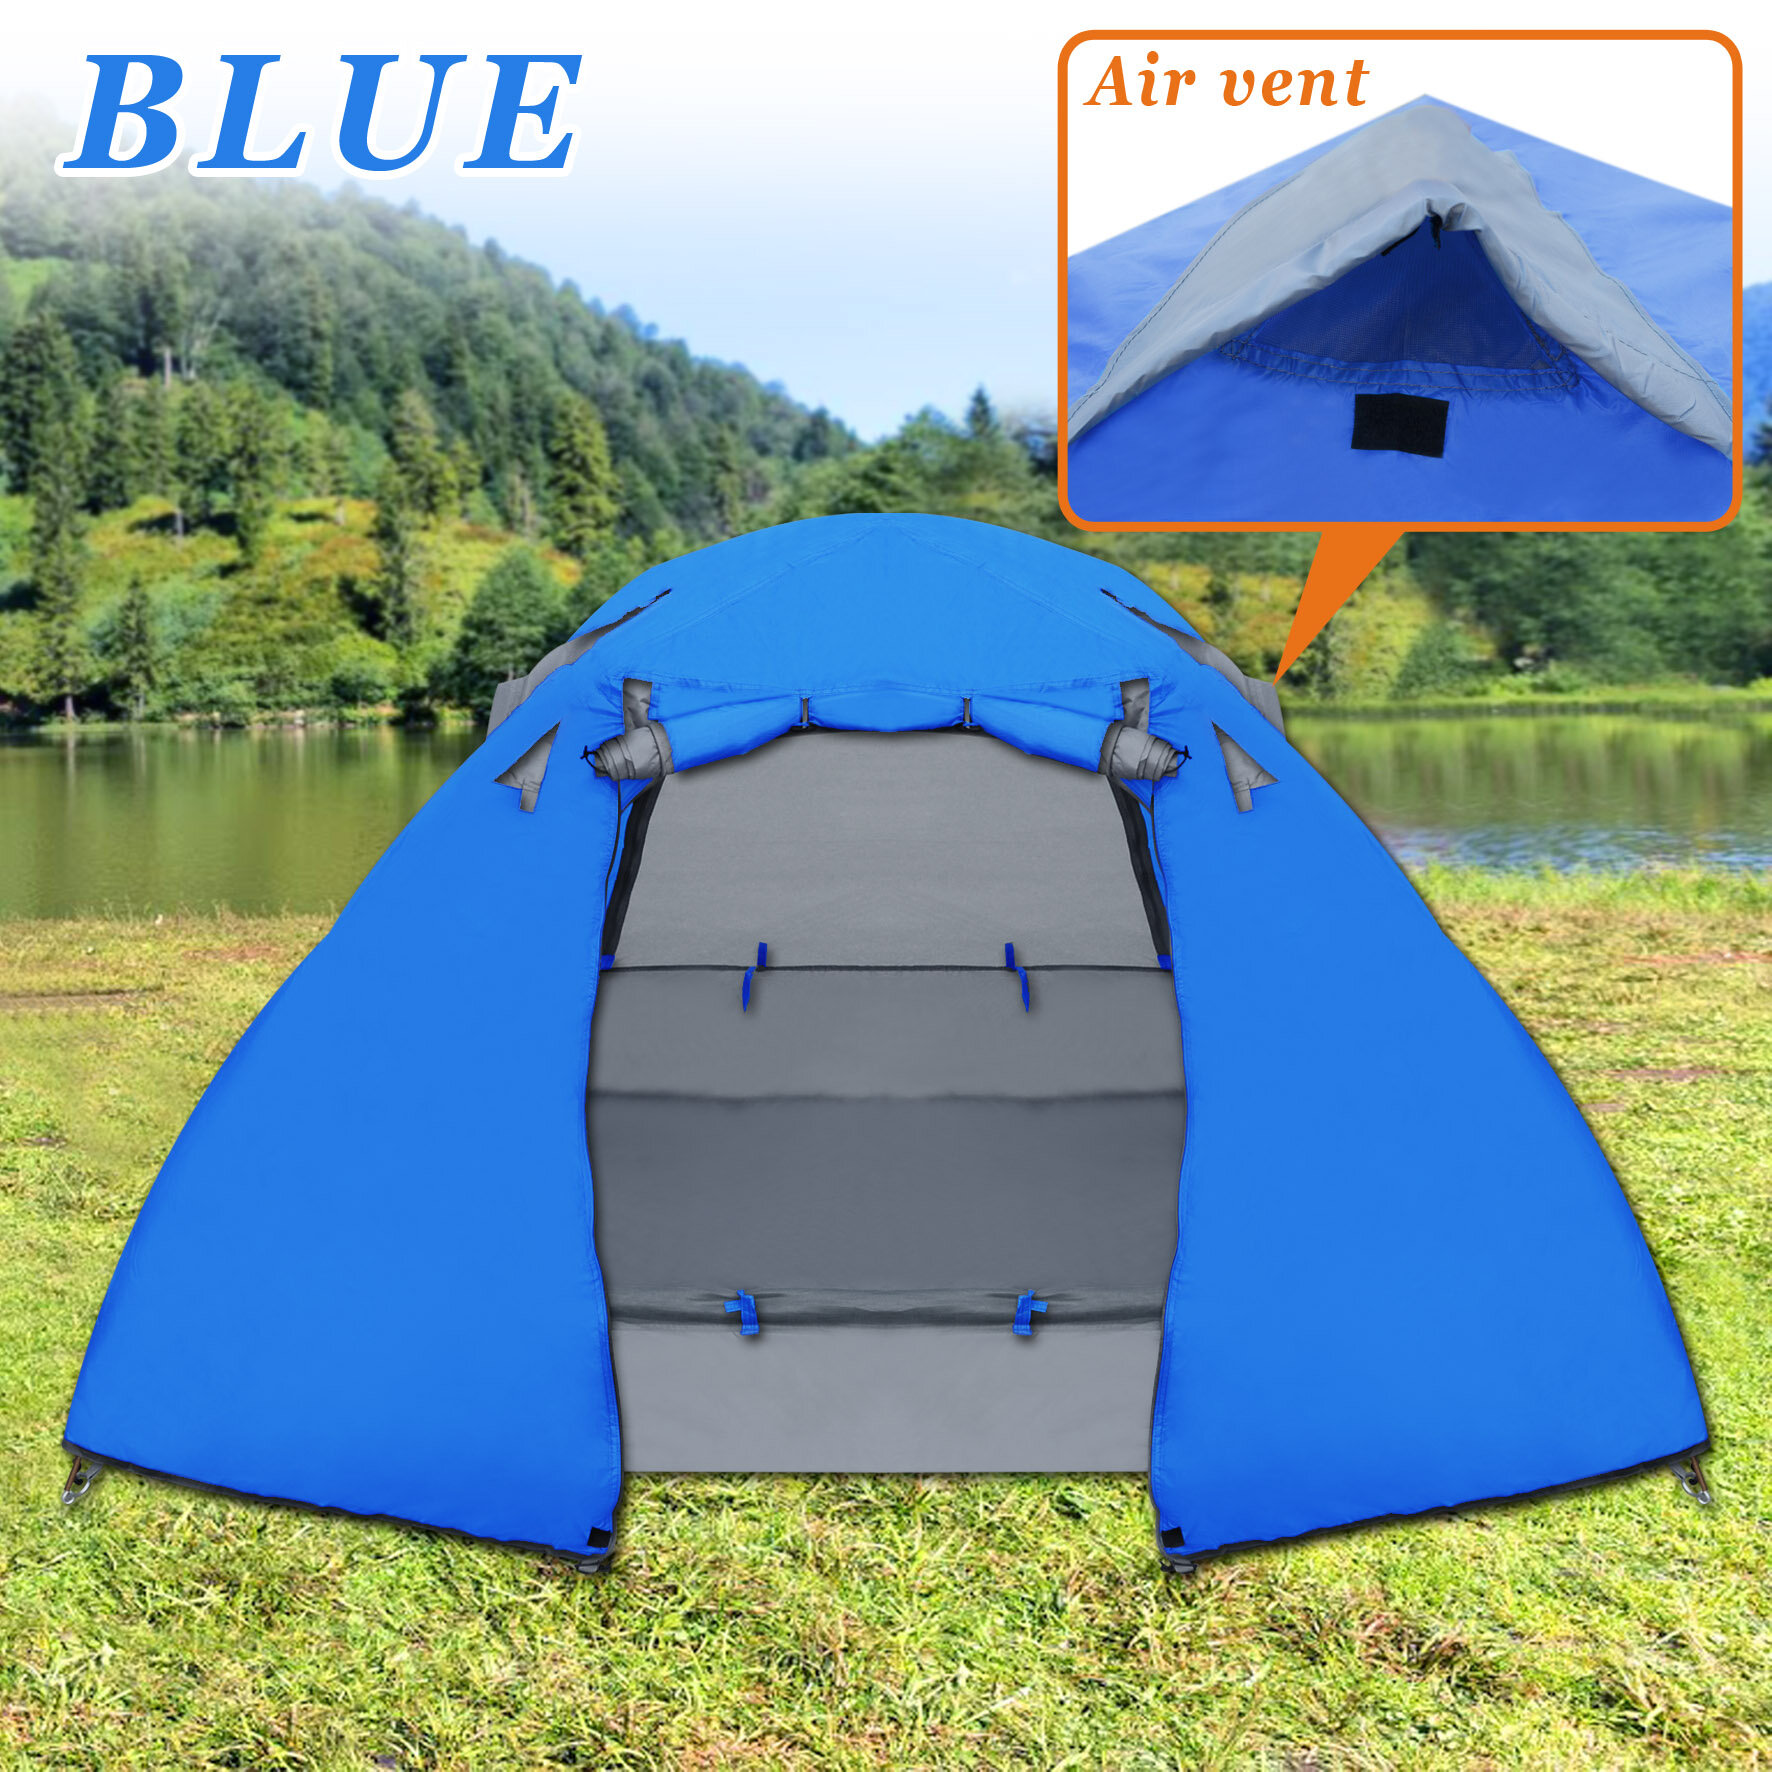 & StrongCamel Portable Backpacking 1-2 Person Tent Waterproof | Wayfair